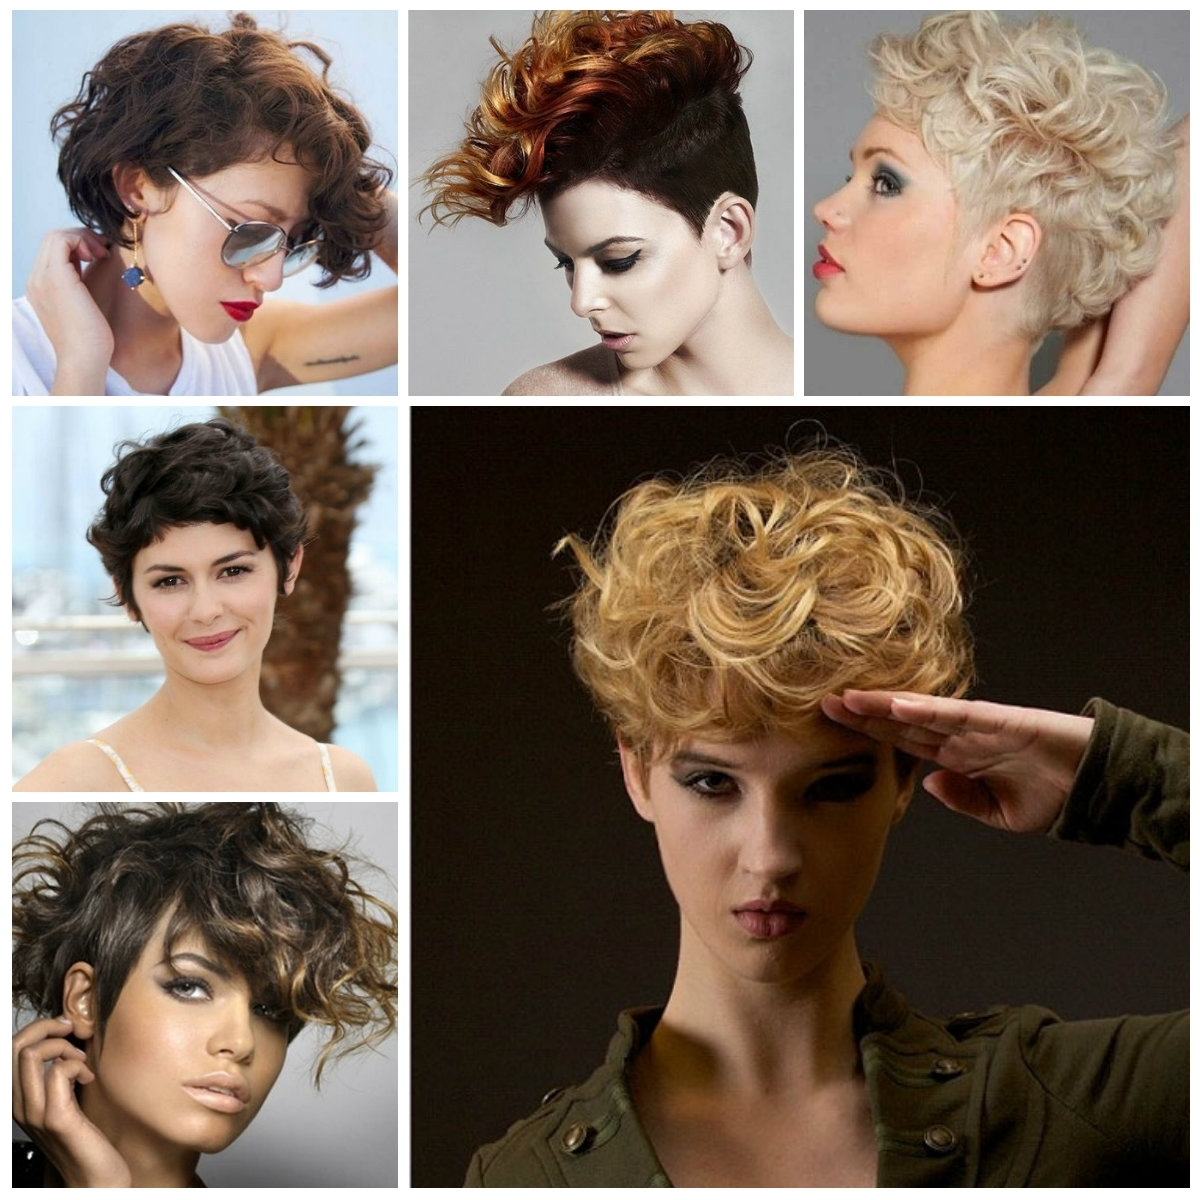 Explore Photos Of Short Curly Pixie Hairstyles Showing 14 Of 15 Photos